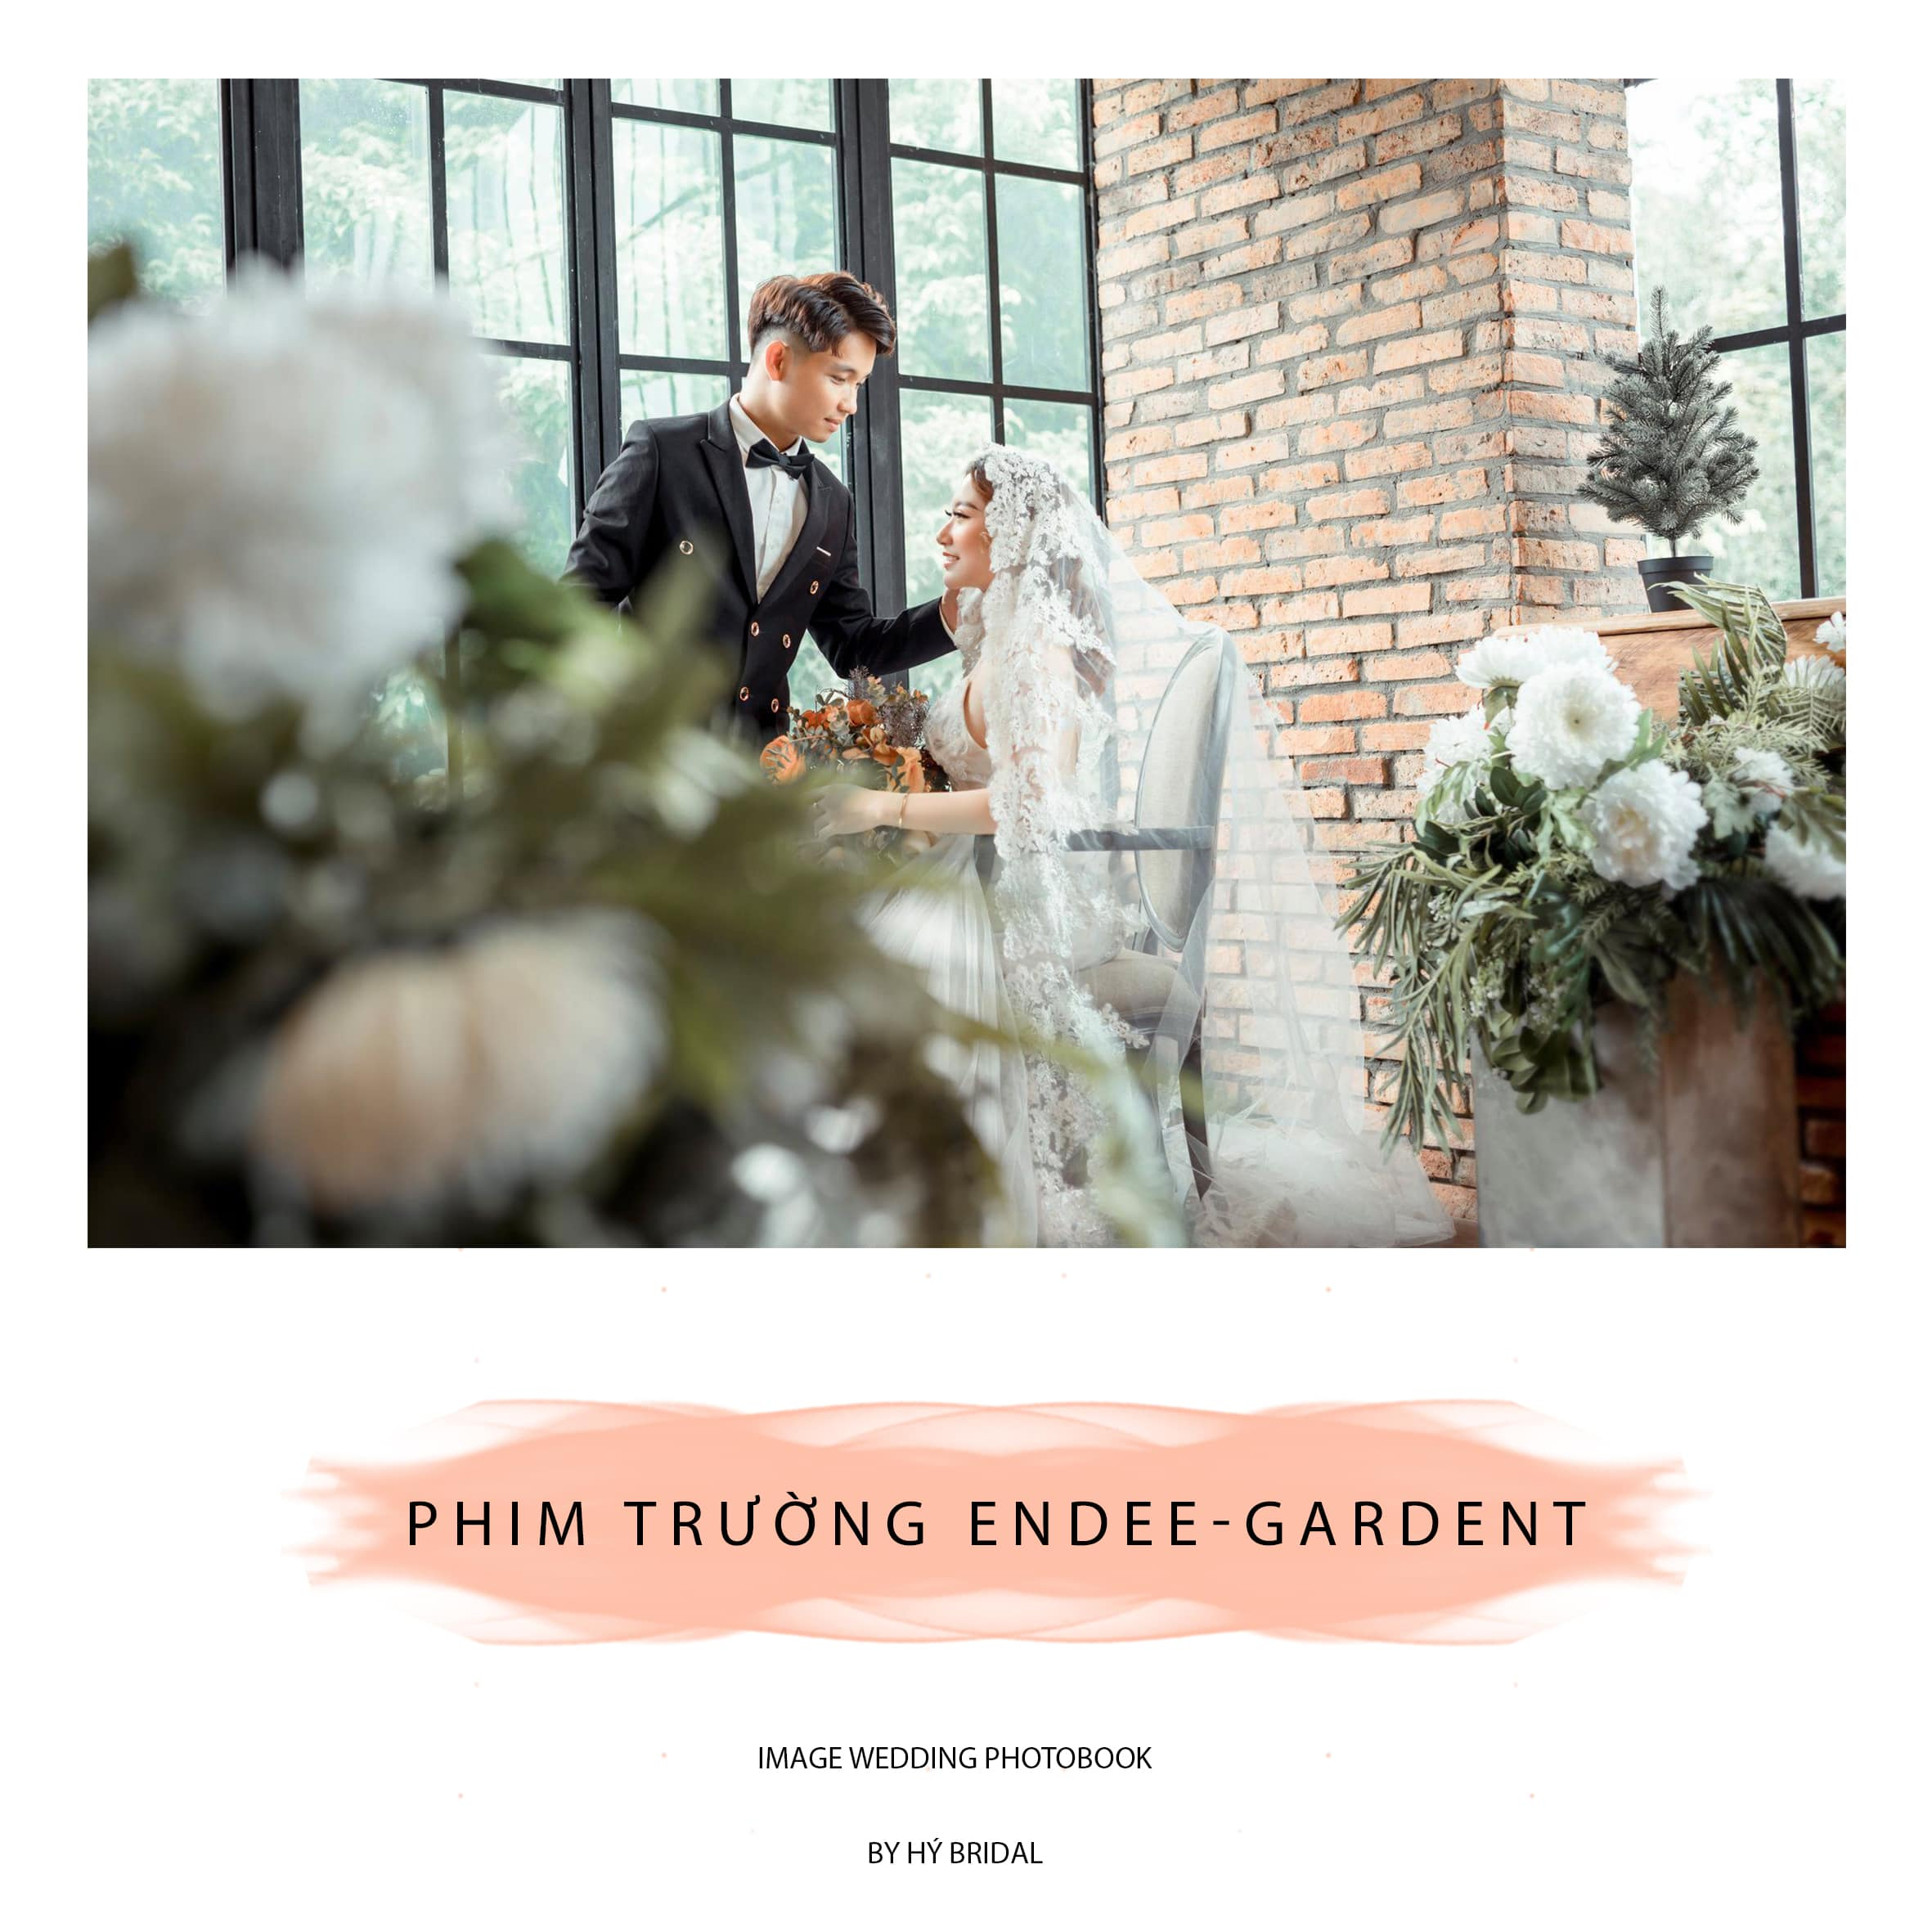 PHIM TRƯỜNG ENDEE - GARDENT